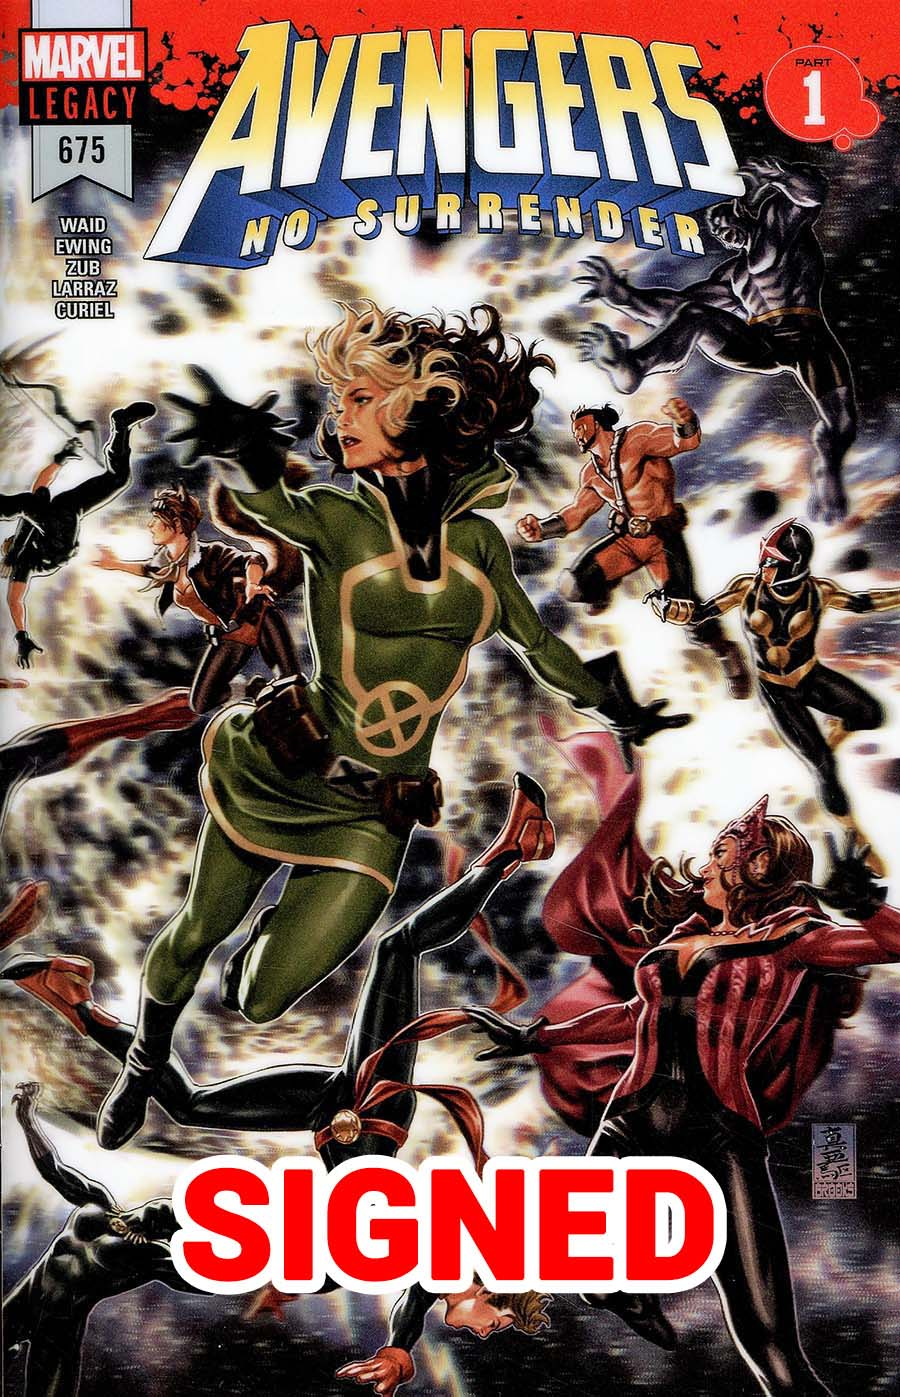 Avengers Vol 6 #675 Cover M Regular Mark Brooks 3D Lenticular Wraparound Cover Signed By Jim Zub (No Surrender Part 1)